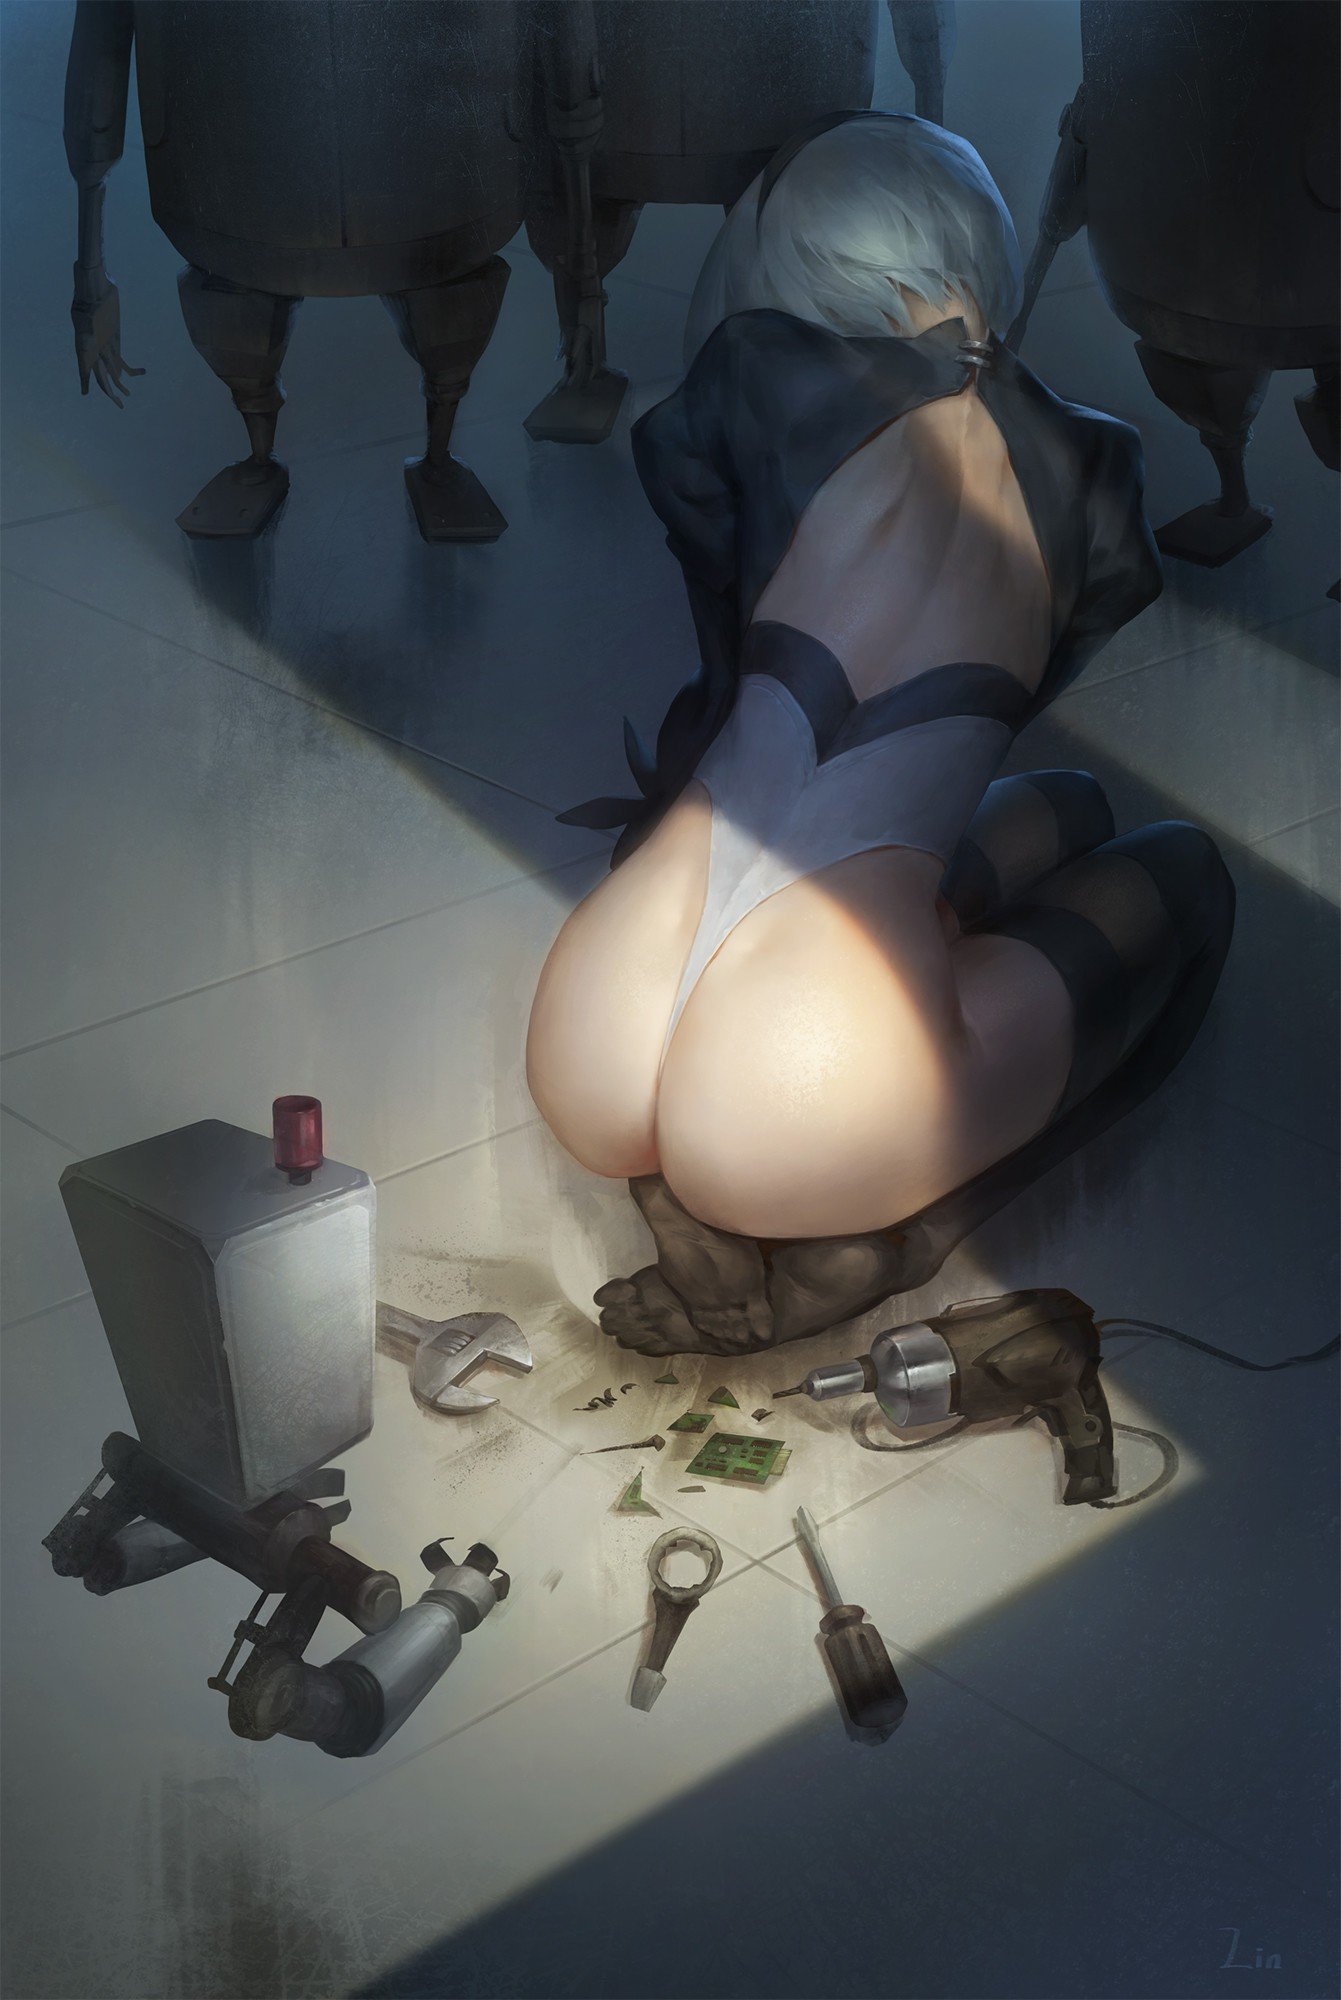 General 1341x2000 Nier: Automata 2B (Nier: Automata) NieR anime girls short hair grey hair ass thighs pantyhose 2D video games cyborg fan art no bra back robot petite